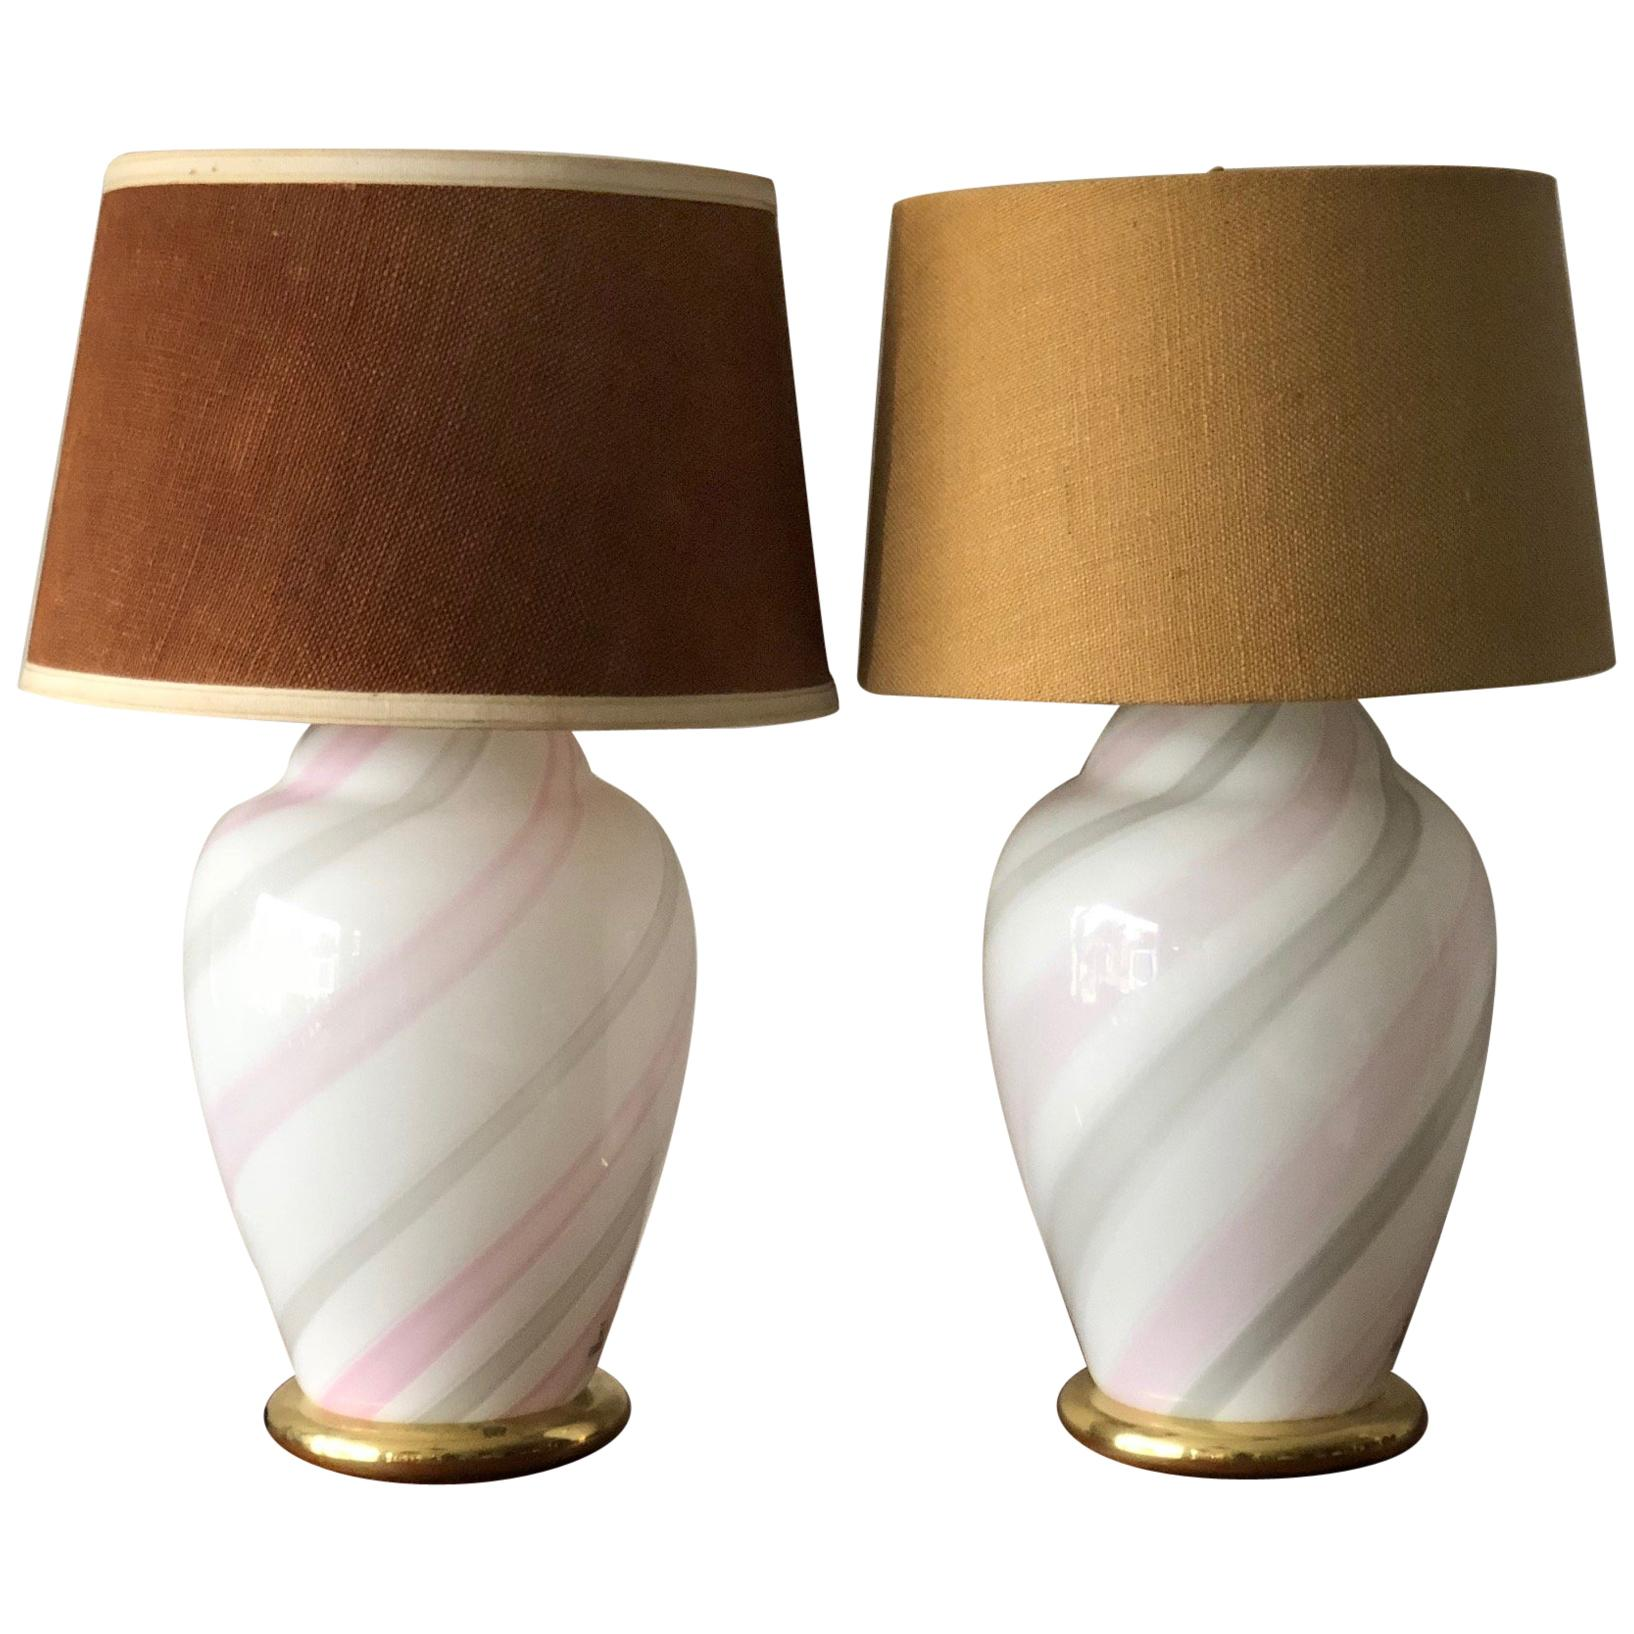 Murano White and Pink Striped Glass Lamps